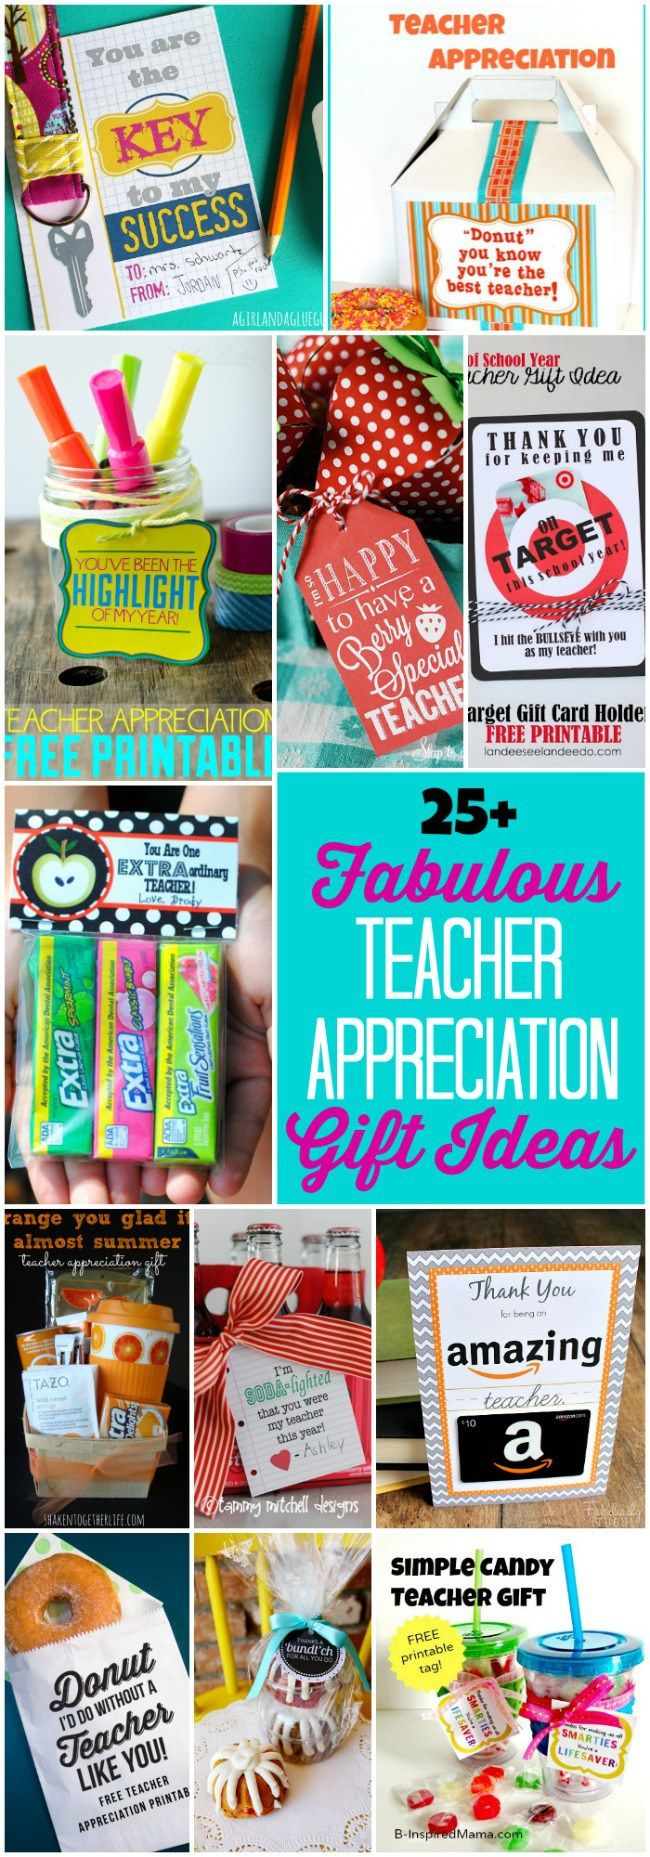 Over 25 fabulous teacher appreciation gift ideas that teachers will LOVE!